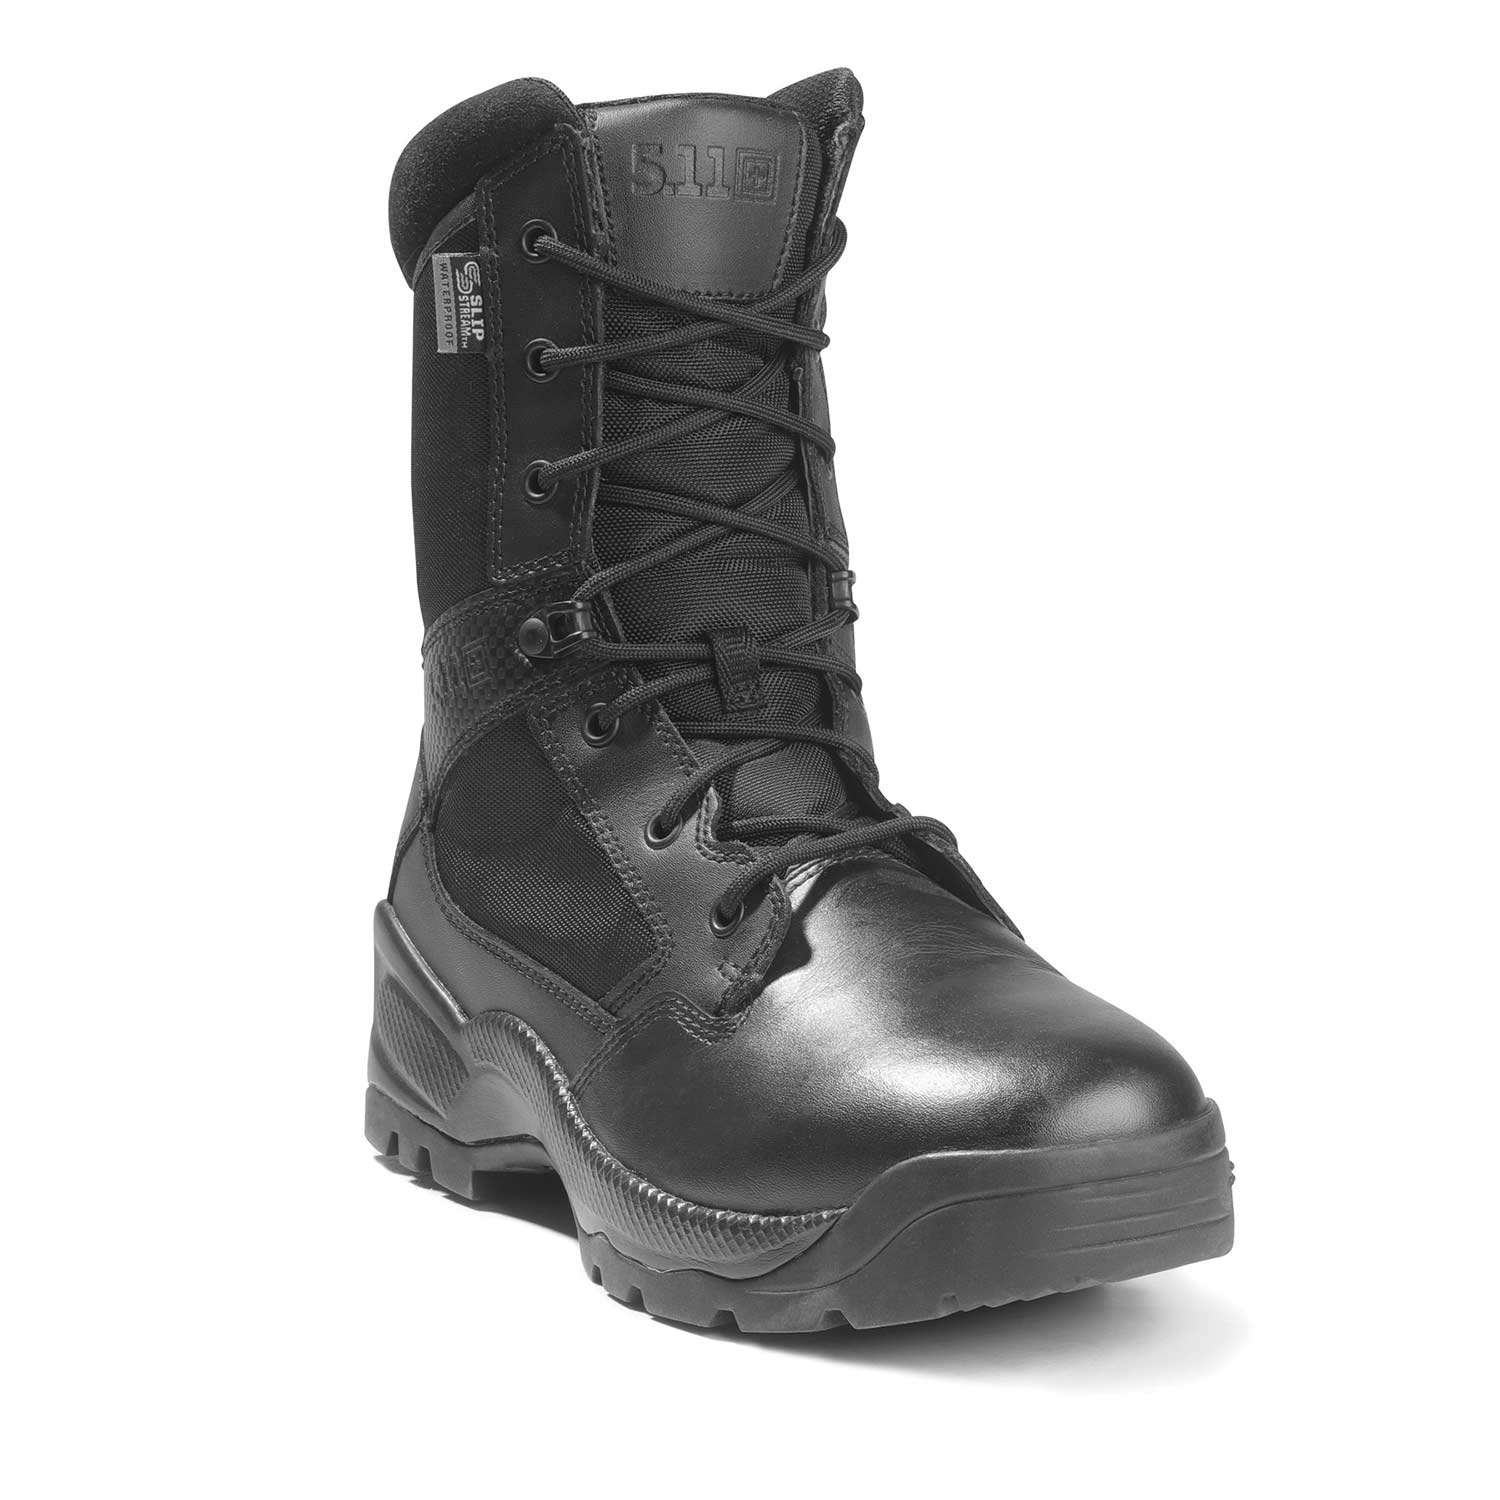 "5.11 Tactical A.T.A.C. Storm 2.0 8"" Duty Boot"